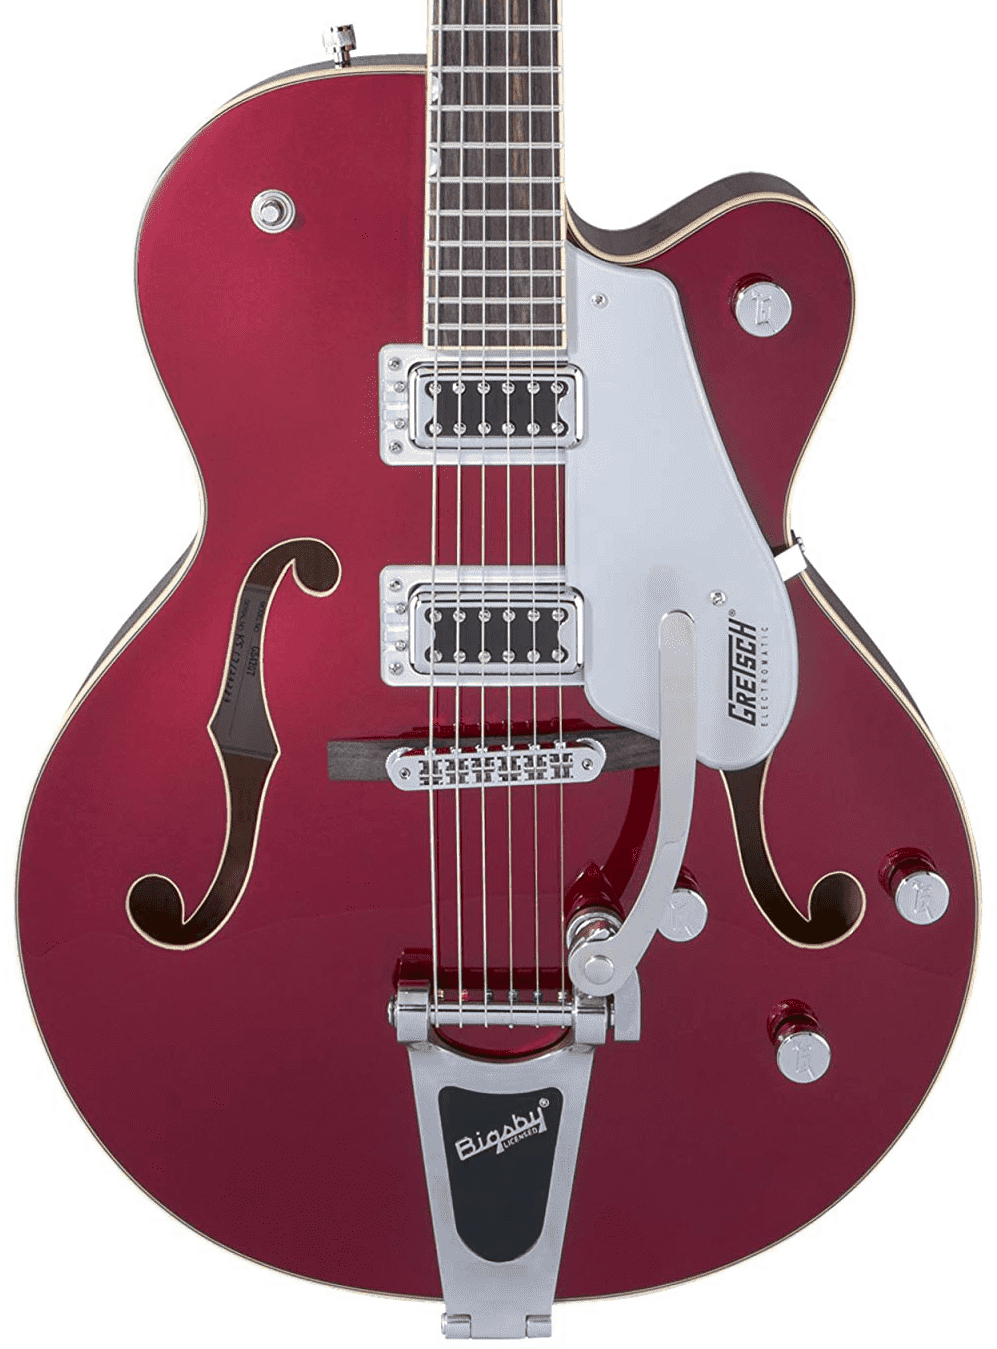 Gretsch G5420T Candy Apple Red